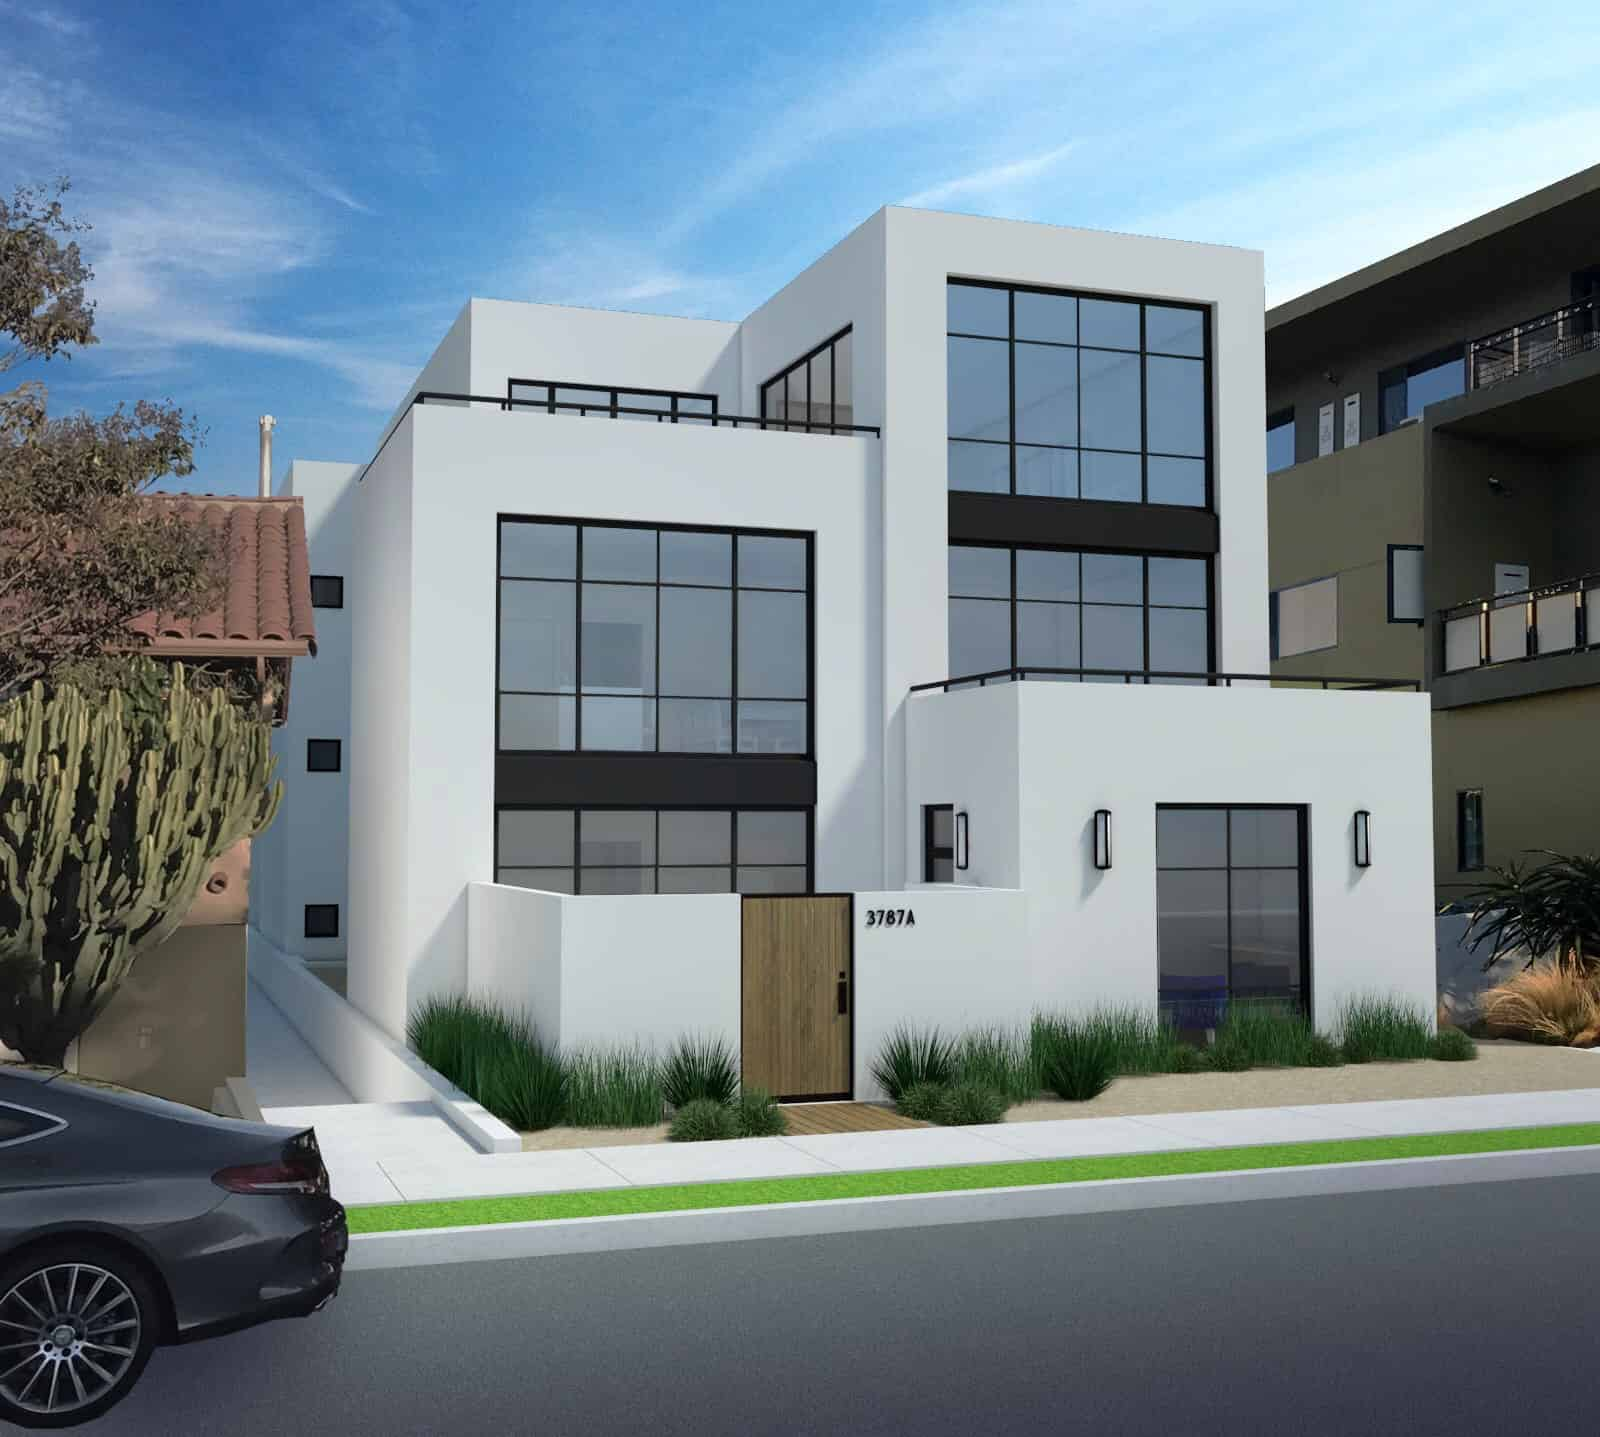 Centre Street Hillcrest Real Estate Development